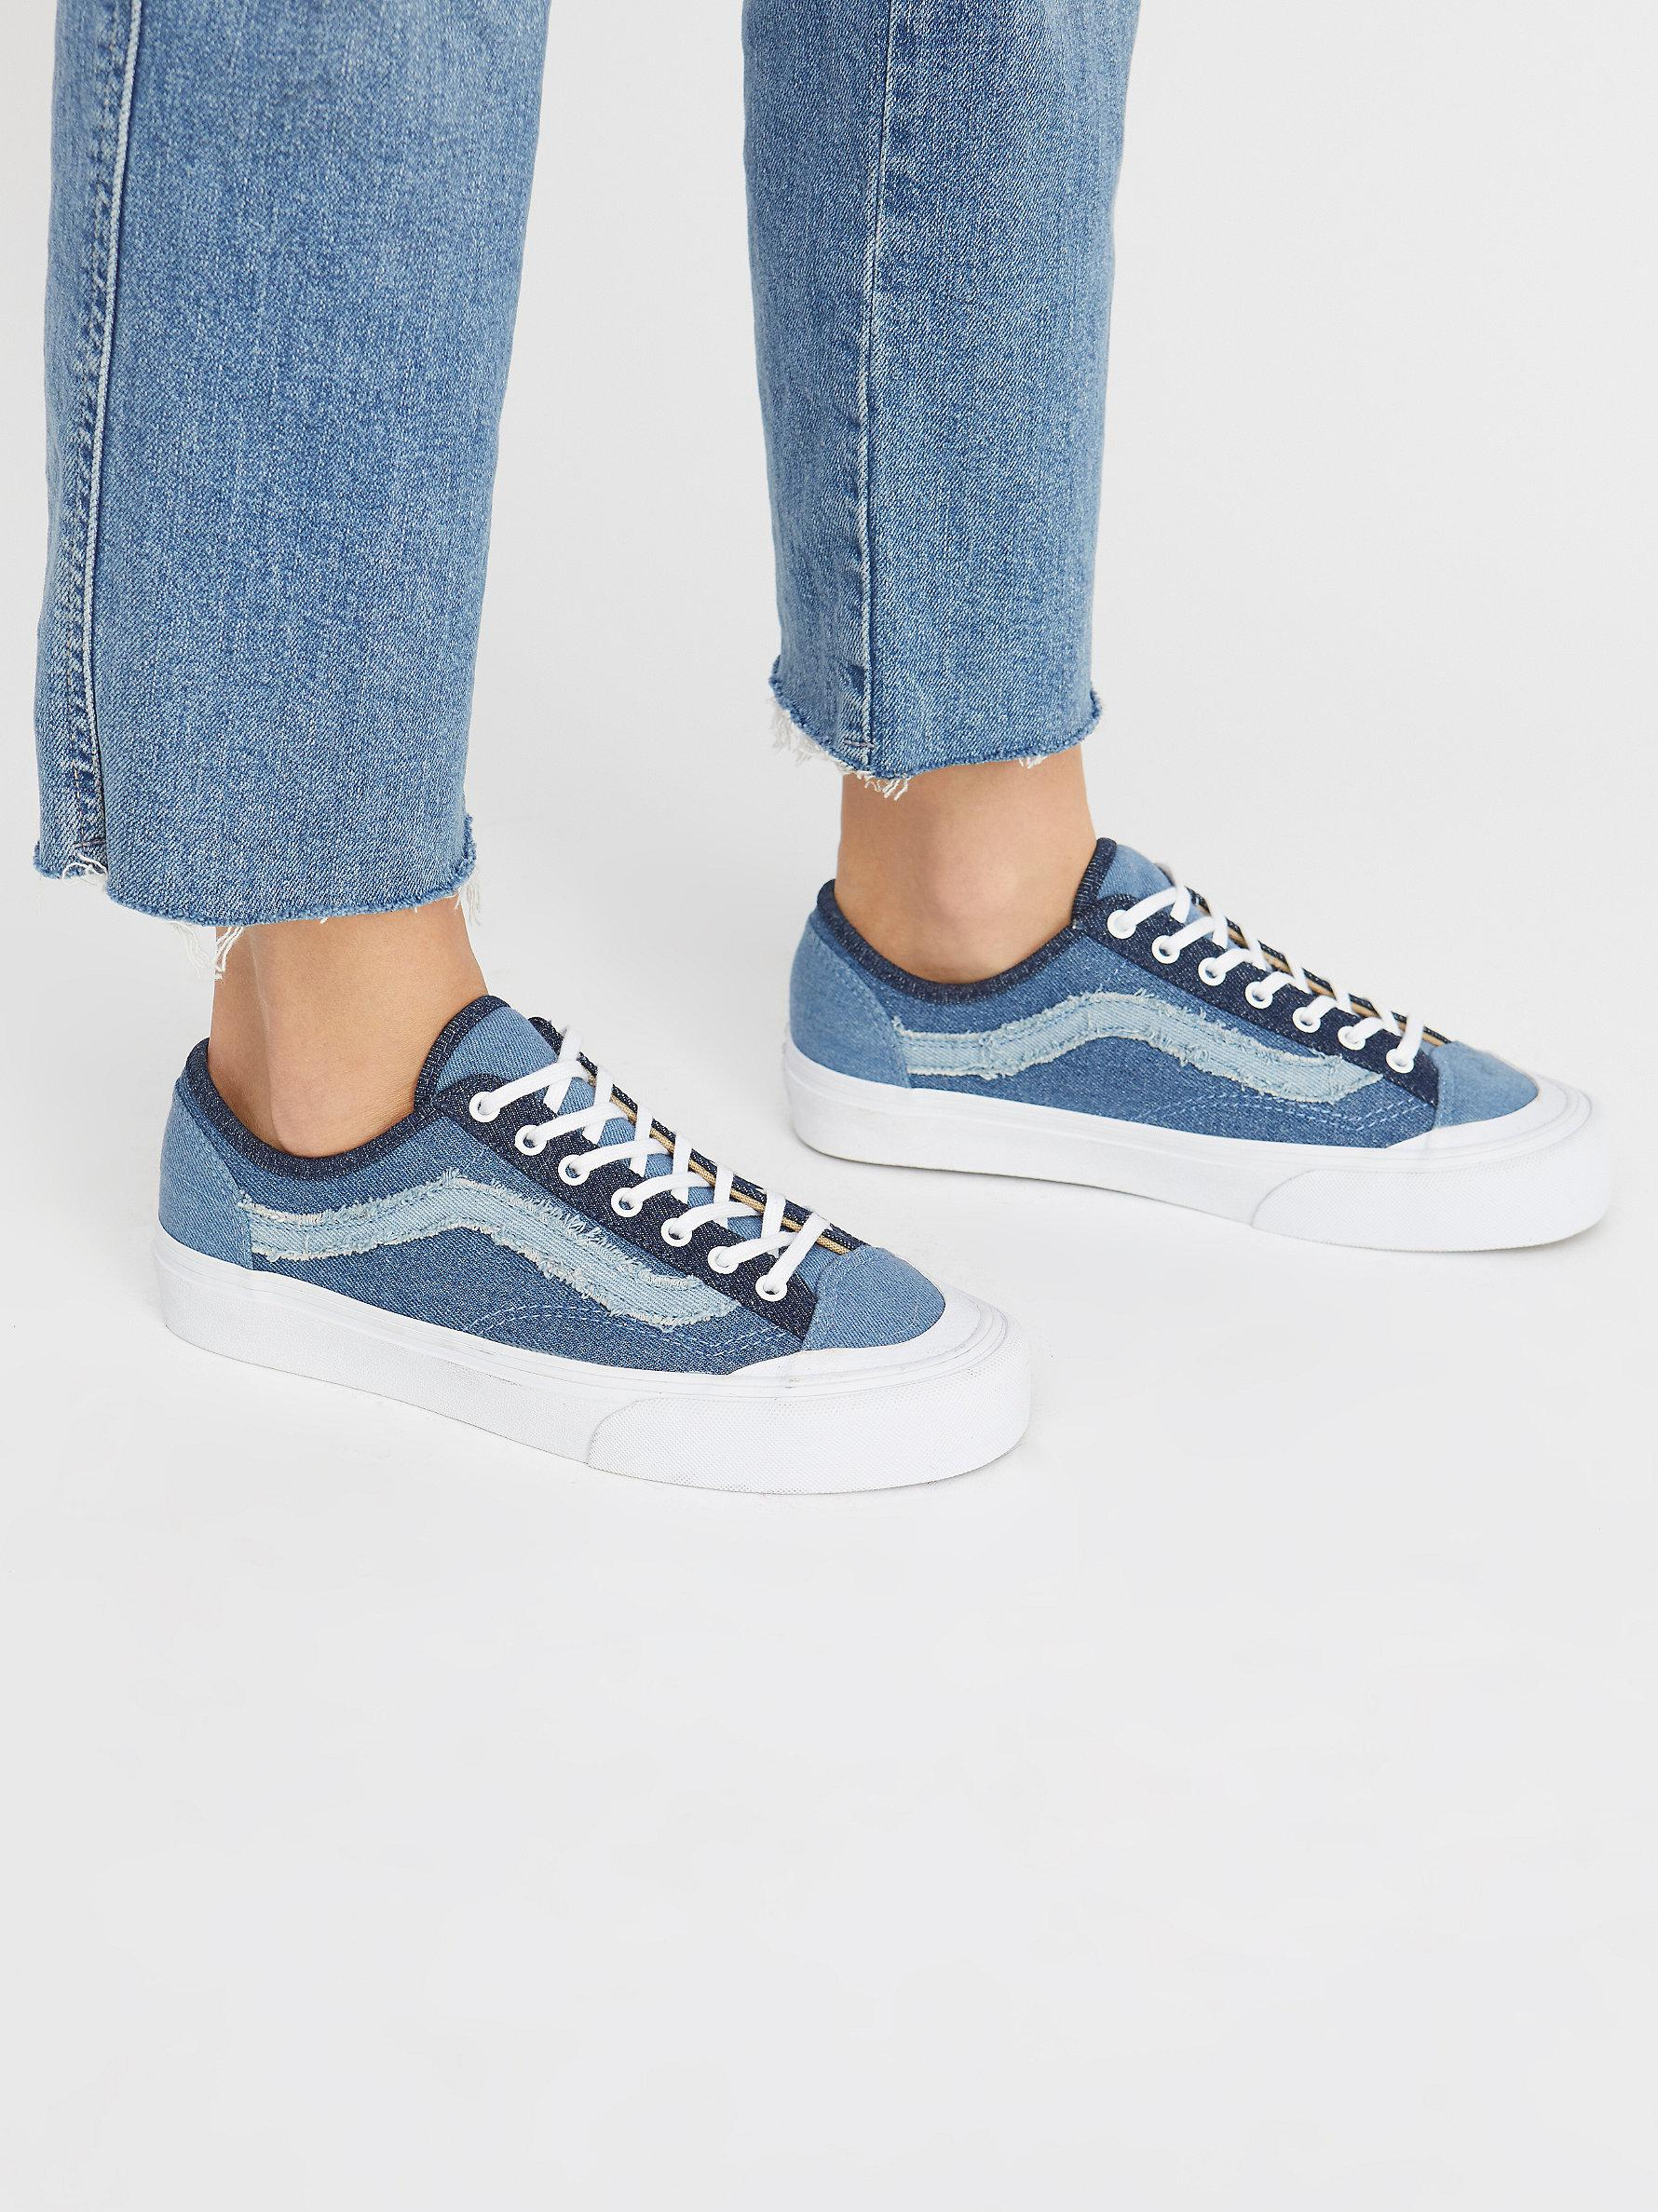 a43f1a1a847bc2 Lyst - Free People Denim Style 36 Deacon Sneaker in Blue